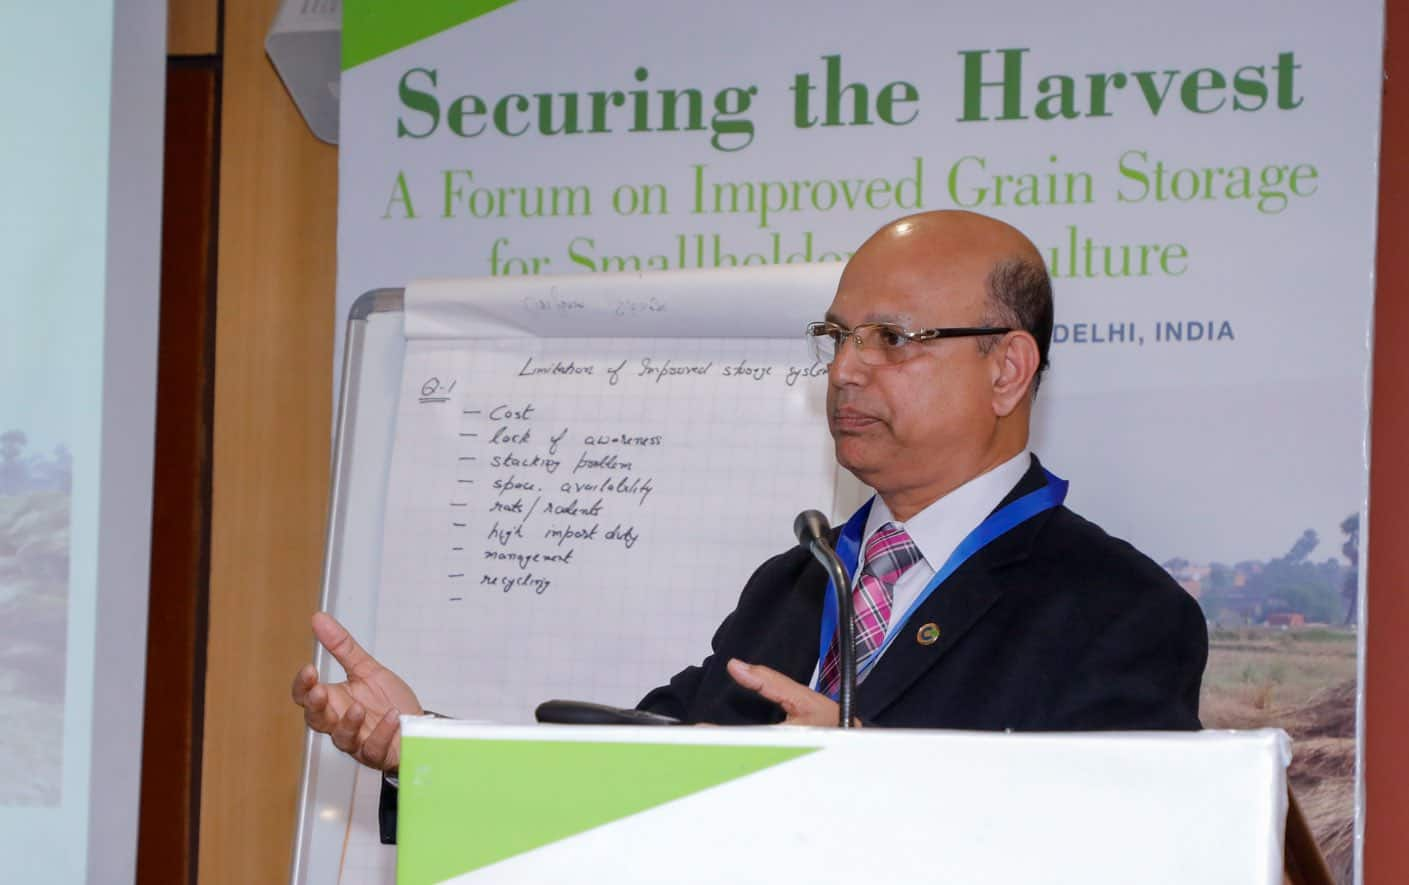 India forum: Securing the harvest for food security